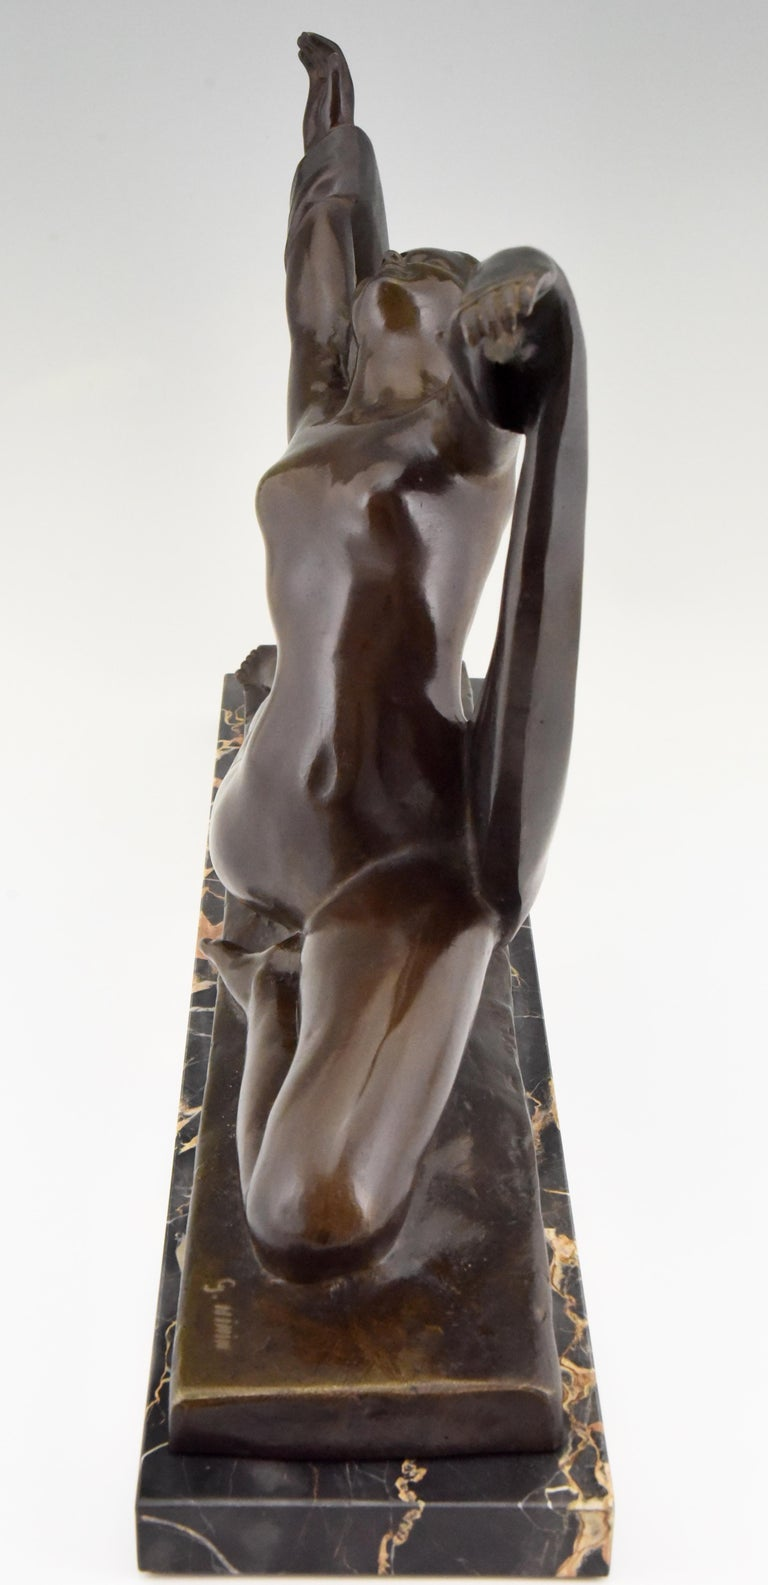 Patinated Art Deco Bronze Sculpture Nude Lady, Scarf Dancer by G. Ninin, France, 1925 For Sale